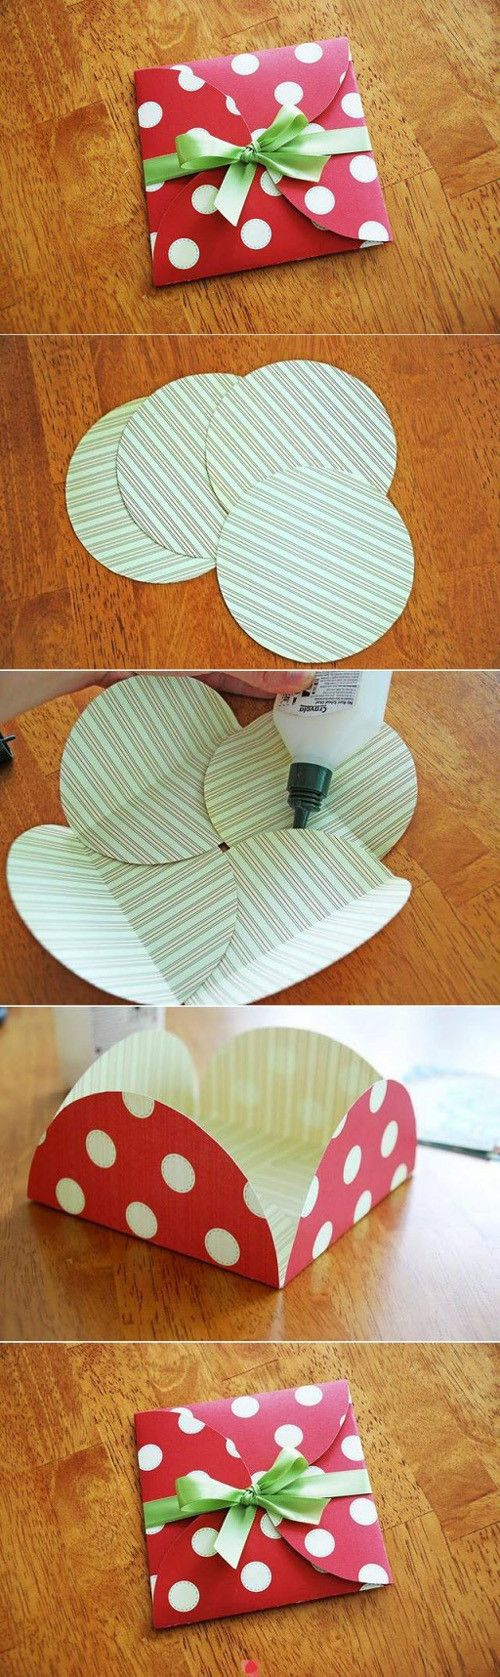 DIY beautiful gift envelope